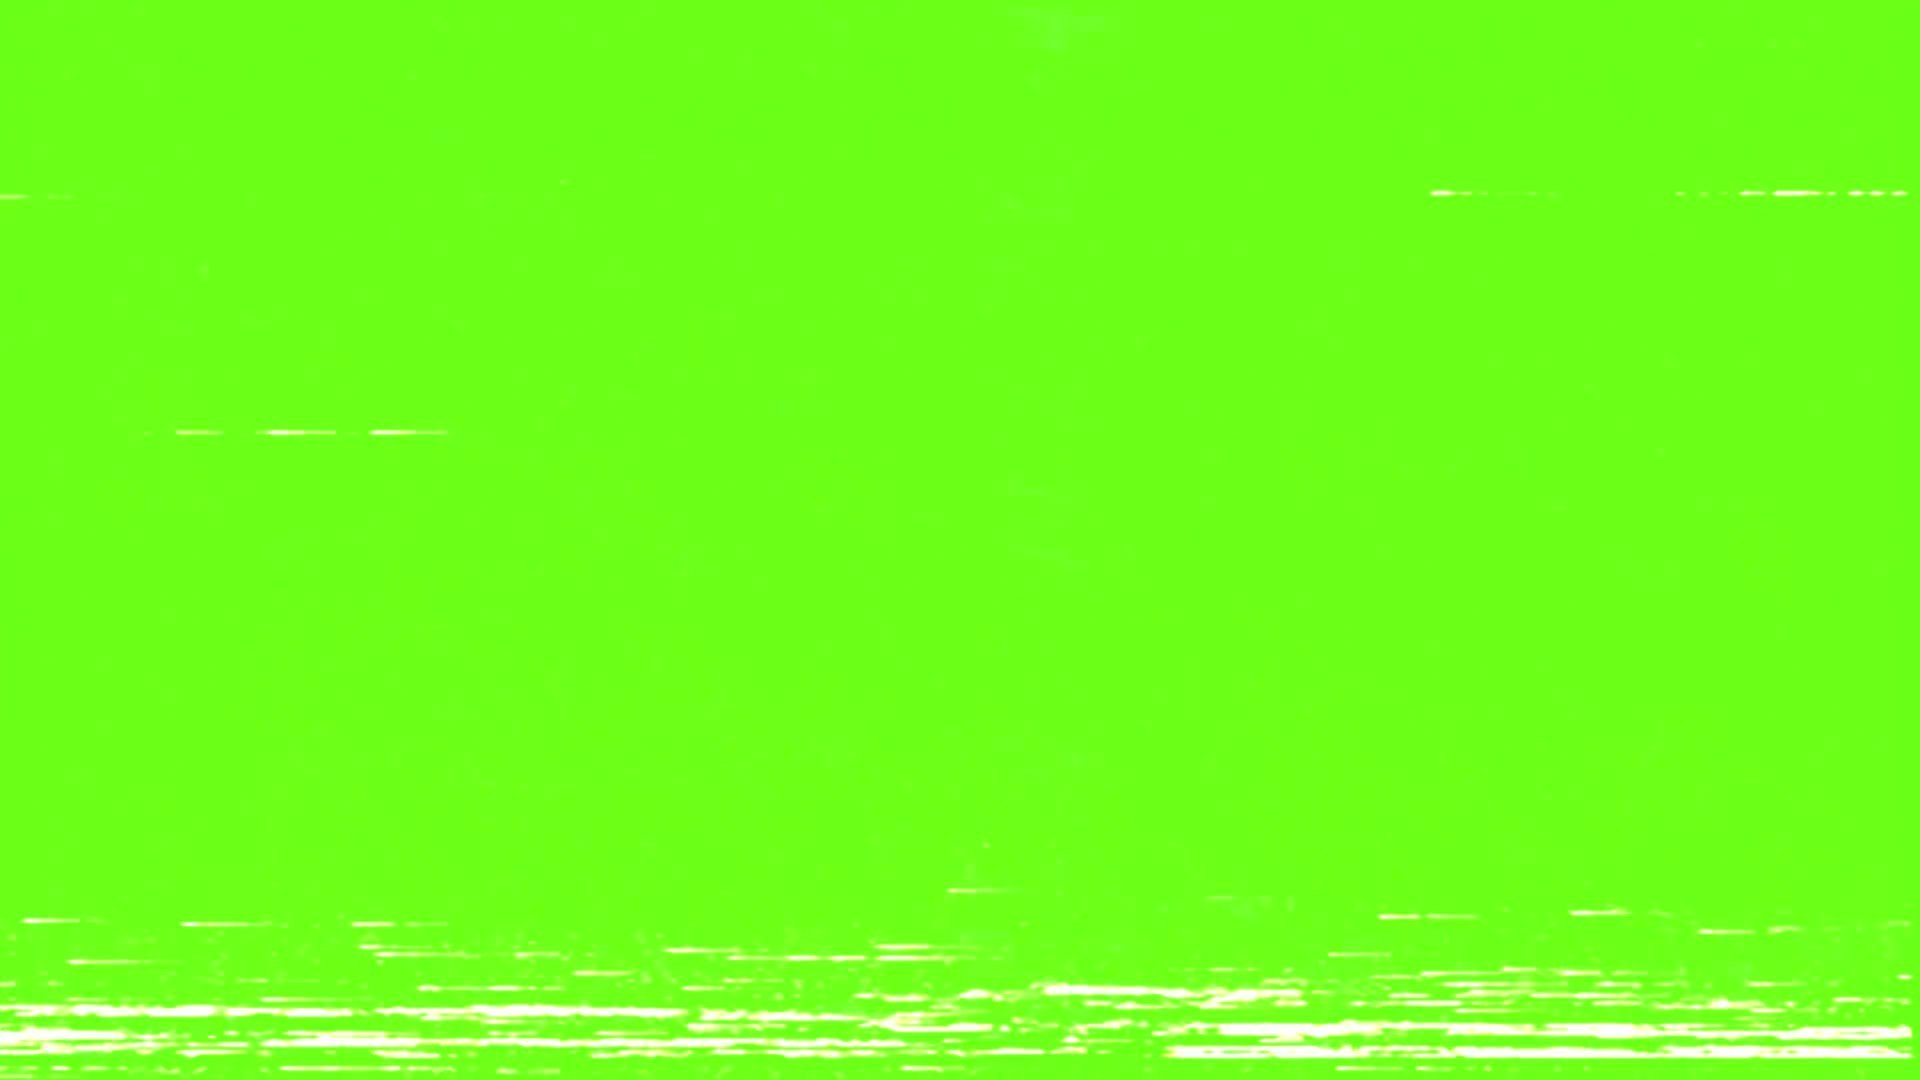 VHS Static Green Screen Overlay - Free HD Video Clips